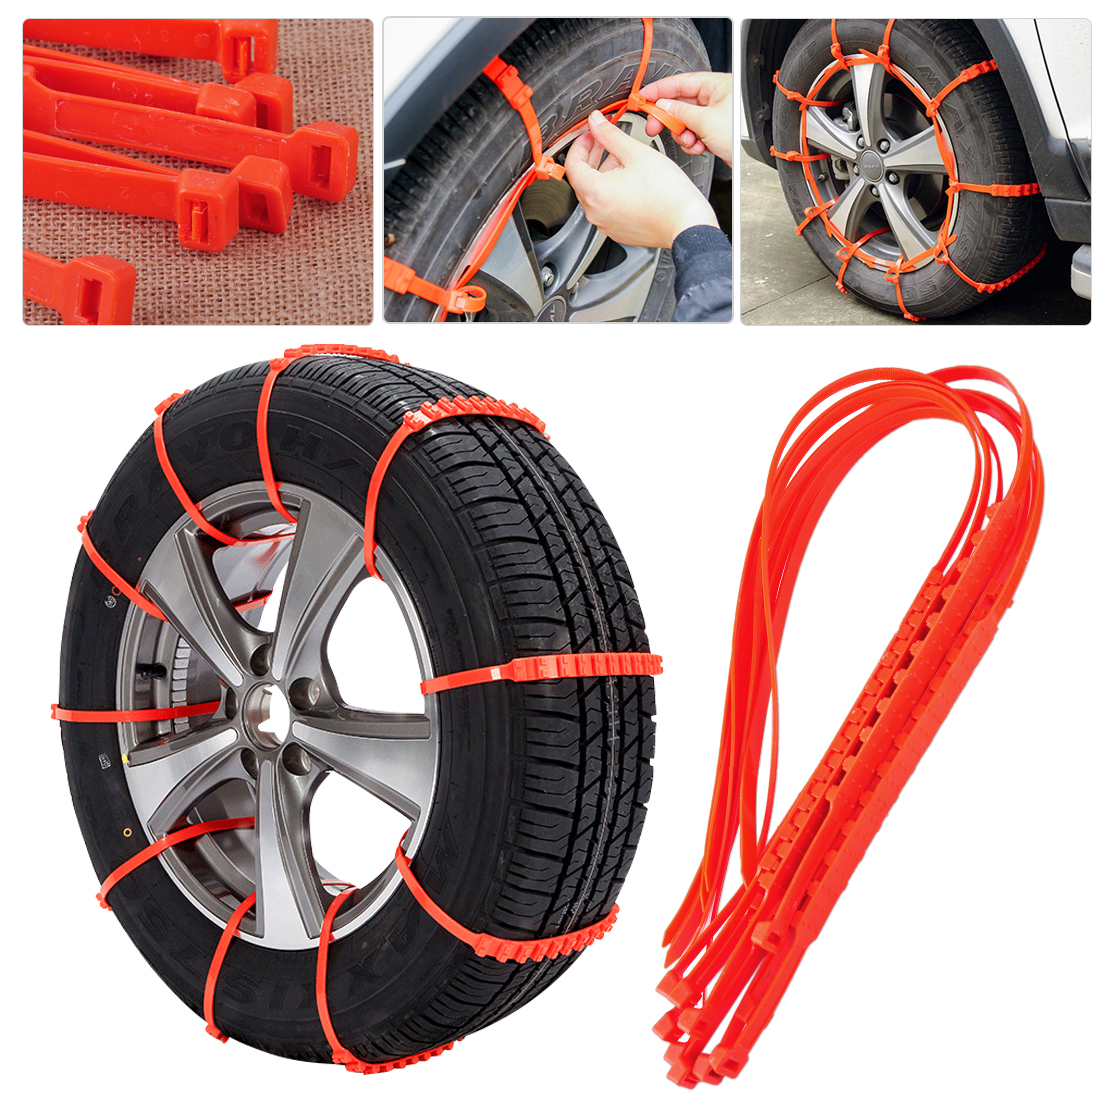 CITALL 10pcs Car Truck SUV Pick up Snow Anti skid Wheel